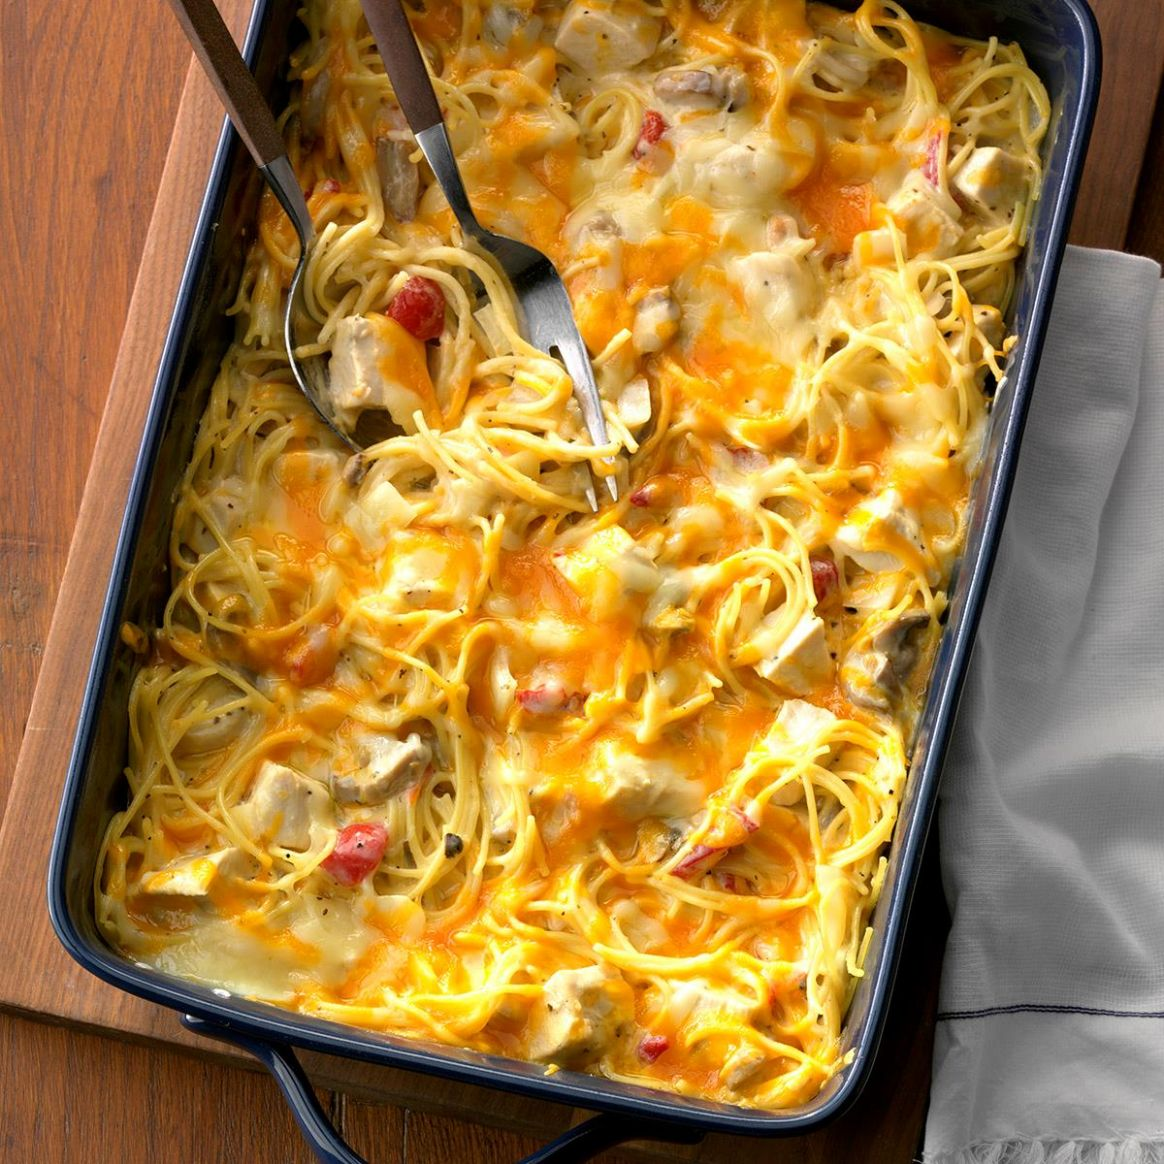 Hearty Chicken Spaghetti Casserole - Recipes Chicken Spaghetti